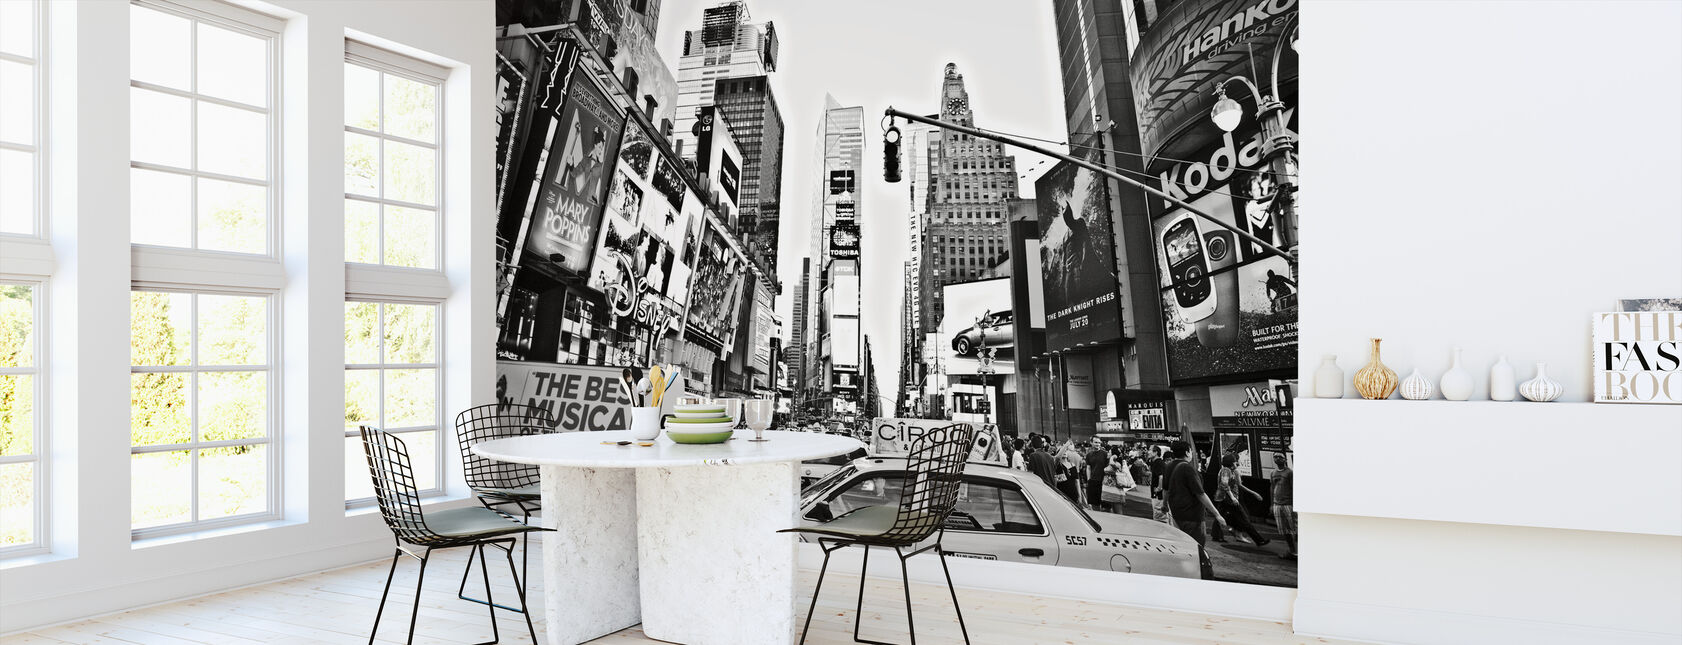 Cabs in Times Square, New York - Wallpaper - Kitchen